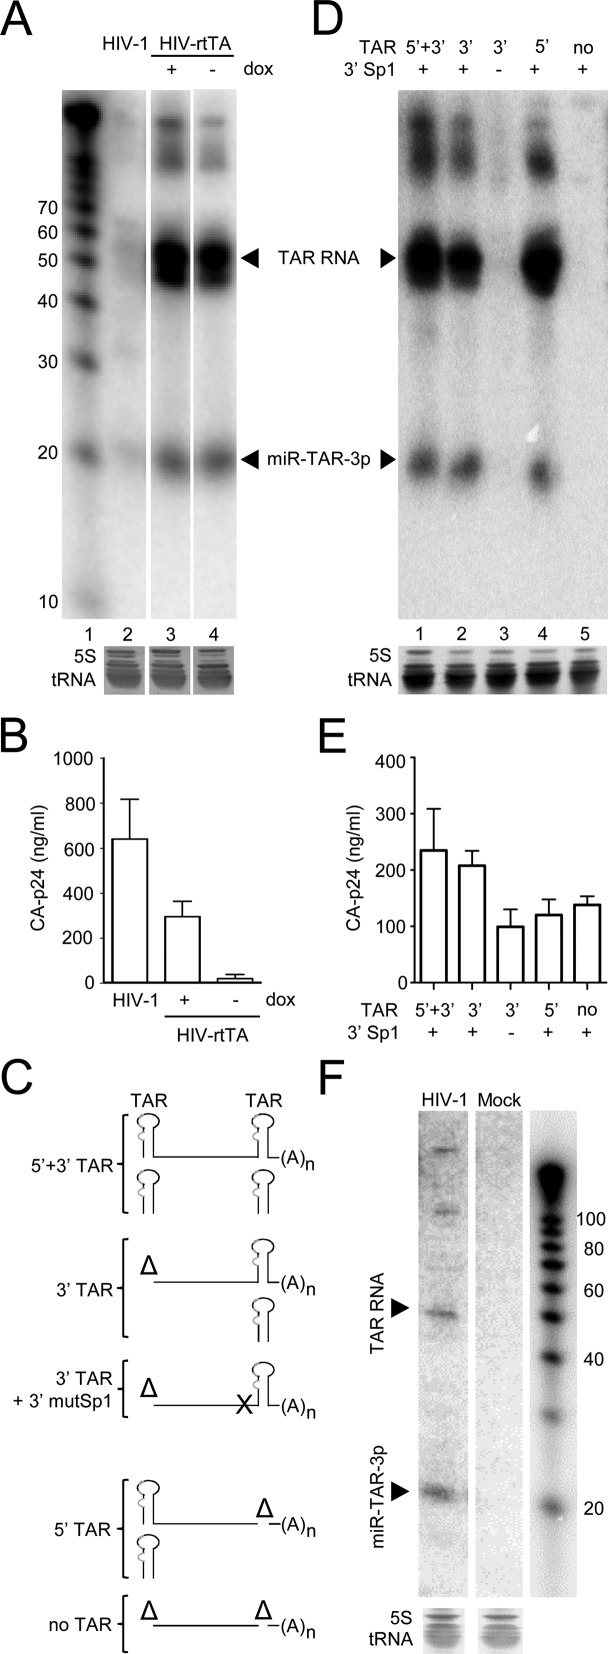 TAR and miR-TAR-3p RNAs are produced by non-processive transcription. ( A–B ) 293T cells were transfected with the HIV-1 and HIV-rtTA constructs and cultured for 48 h without dox (HIV-1 and HIV-rtTA) or with dox (HIV-rtTA). ( A ) Intracellular small RNAs were isolated and analysed by northern blotting. An LNA probe complementary to the miR-TAR-3p sequence was used to identify the position of miR-TAR-3p and TAR RNAs. The position of the size markers is shown on the left. Ethidium bromide staining of small 5S rRNA (5S) and tRNAs is shown as loading control below the blot. ( B ) The CA-p24 level in the culture supernatant was measured to quantify gene expression. The mean ±SD for three experiments is shown. ( C ) Expected TAR-containing transcripts produced by the HIV-rtTA variants with the TAR mut element in both the 5′ and 3′LTR, only the 5′ or 3′ LTR, or no TAR element (Δ, TAR deletion). In the 3′TAR+3′mutSp1 variant, the TAR element in the 5′ LTR was deleted and the Sp1 binding sequences in the 3′ LTR region were mutated. This set of variants is based on the HIV-rtTA-Tat Y26A variant ( 47 ) and all constructs carry the Tat Y26A mutation (in addition to the TAR mut mutations) to disable the Tat-TAR transcription activation mechanism.( D ) 293T cells were transfected with the HIV-rtTA constructs shown in panel C and cultured for 48 h with dox. Small RNAs were isolated and analysed by northern blotting using the miR-TAR-3p probe, as described for panel A. ( E ) CA-p24 production was analysed as described for panel B. The mean ±SD for three experiments is shown. ( F ) CD4-enriched human PBMC were infected with 293T-produced wt HIV-1 virus and cultured for 48 h. Small RNAs were isolated and northern blot analysis was performed as described for Figure 3A . Mock, control uninfected PBMC. The RNA size marker is shown at the right (a short phosphorimager exposure is shown for this lane because of the high radio activity of the 32 P-labeled marker fragments).